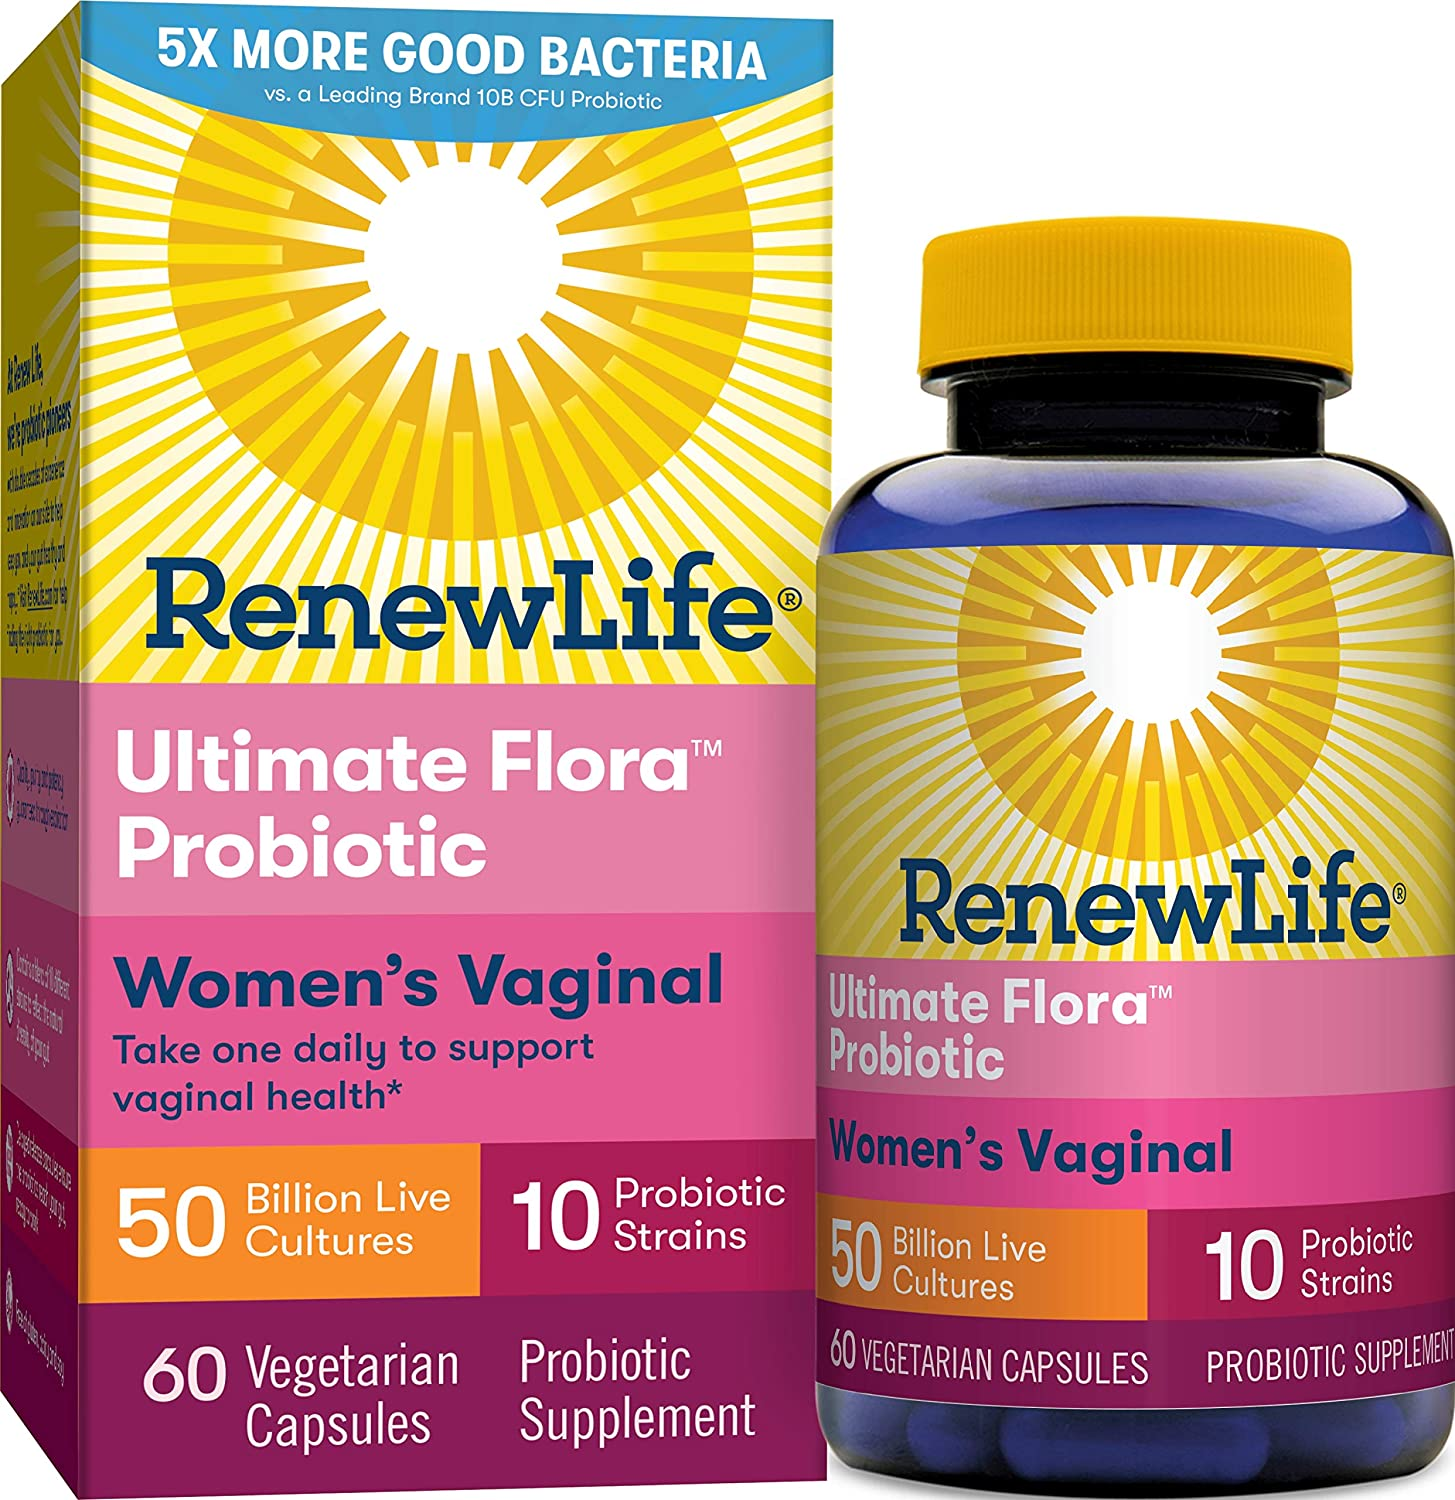 Renew Life Ultimate Flora Probiotic Women's Vaginal